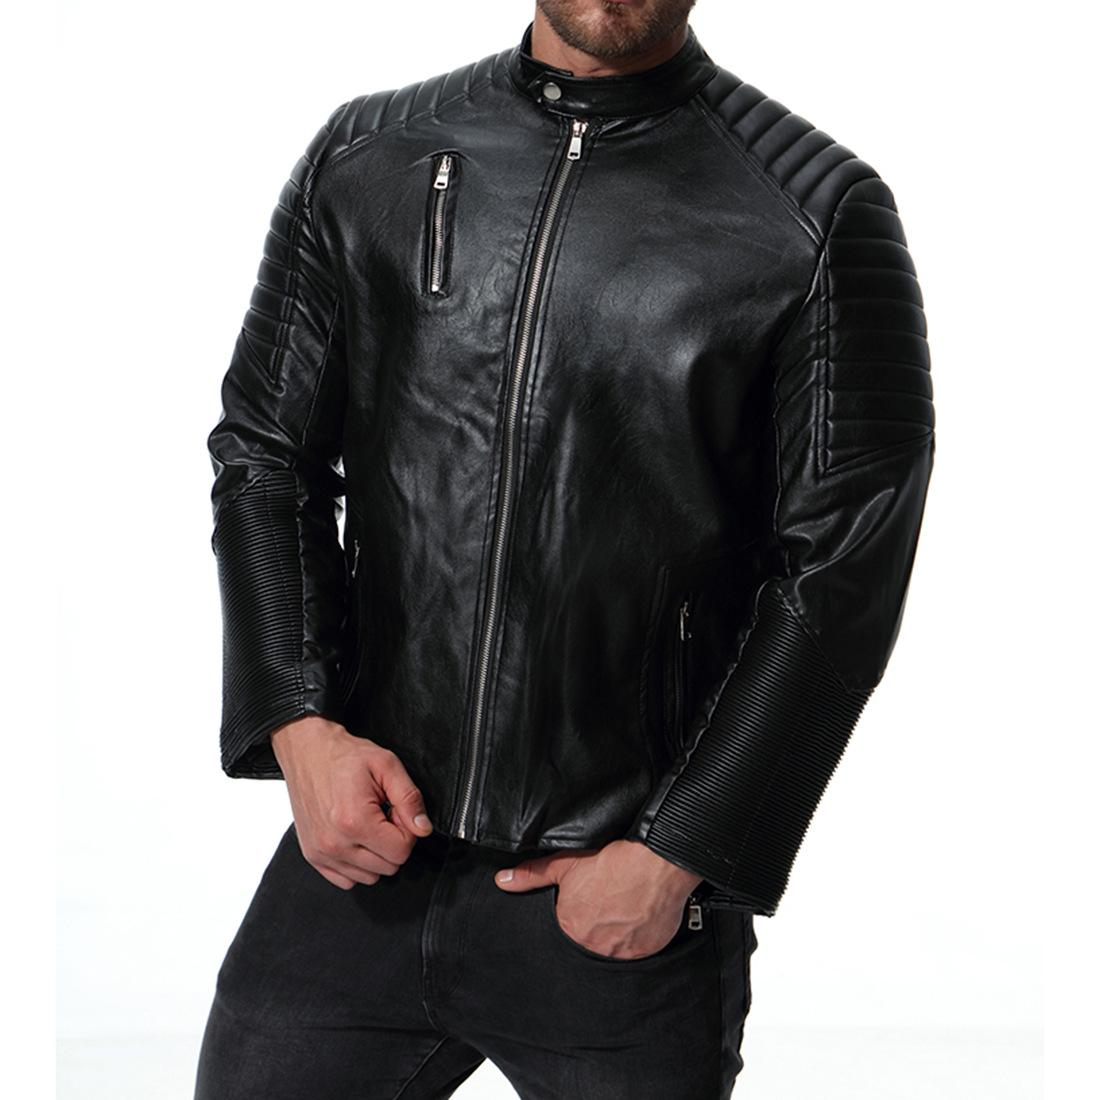 8b05f38c 2019 Mens Leather Jackets Men Jacket High Quality Classic Motorcycle Bike  Plus Size Cowboy Jackets Male Warm Thick Coats J181056 From Janet1221, ...